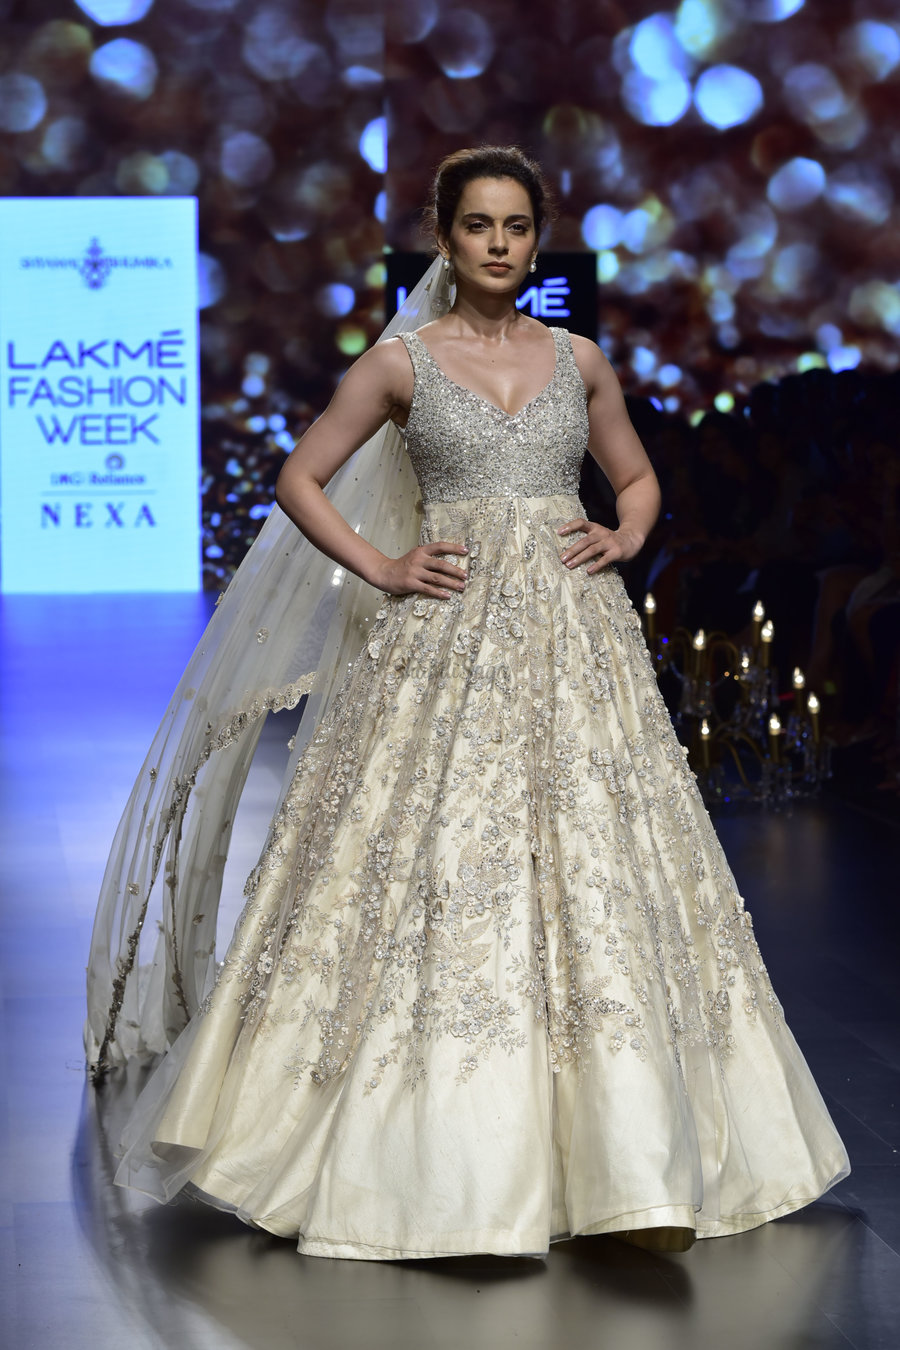 082129fab767 Kangana rocked the fairytale-look in in that ivory gown by Shyamal    Bhumika. The dupatta attached to her bun brings the 90s look back with such  class.